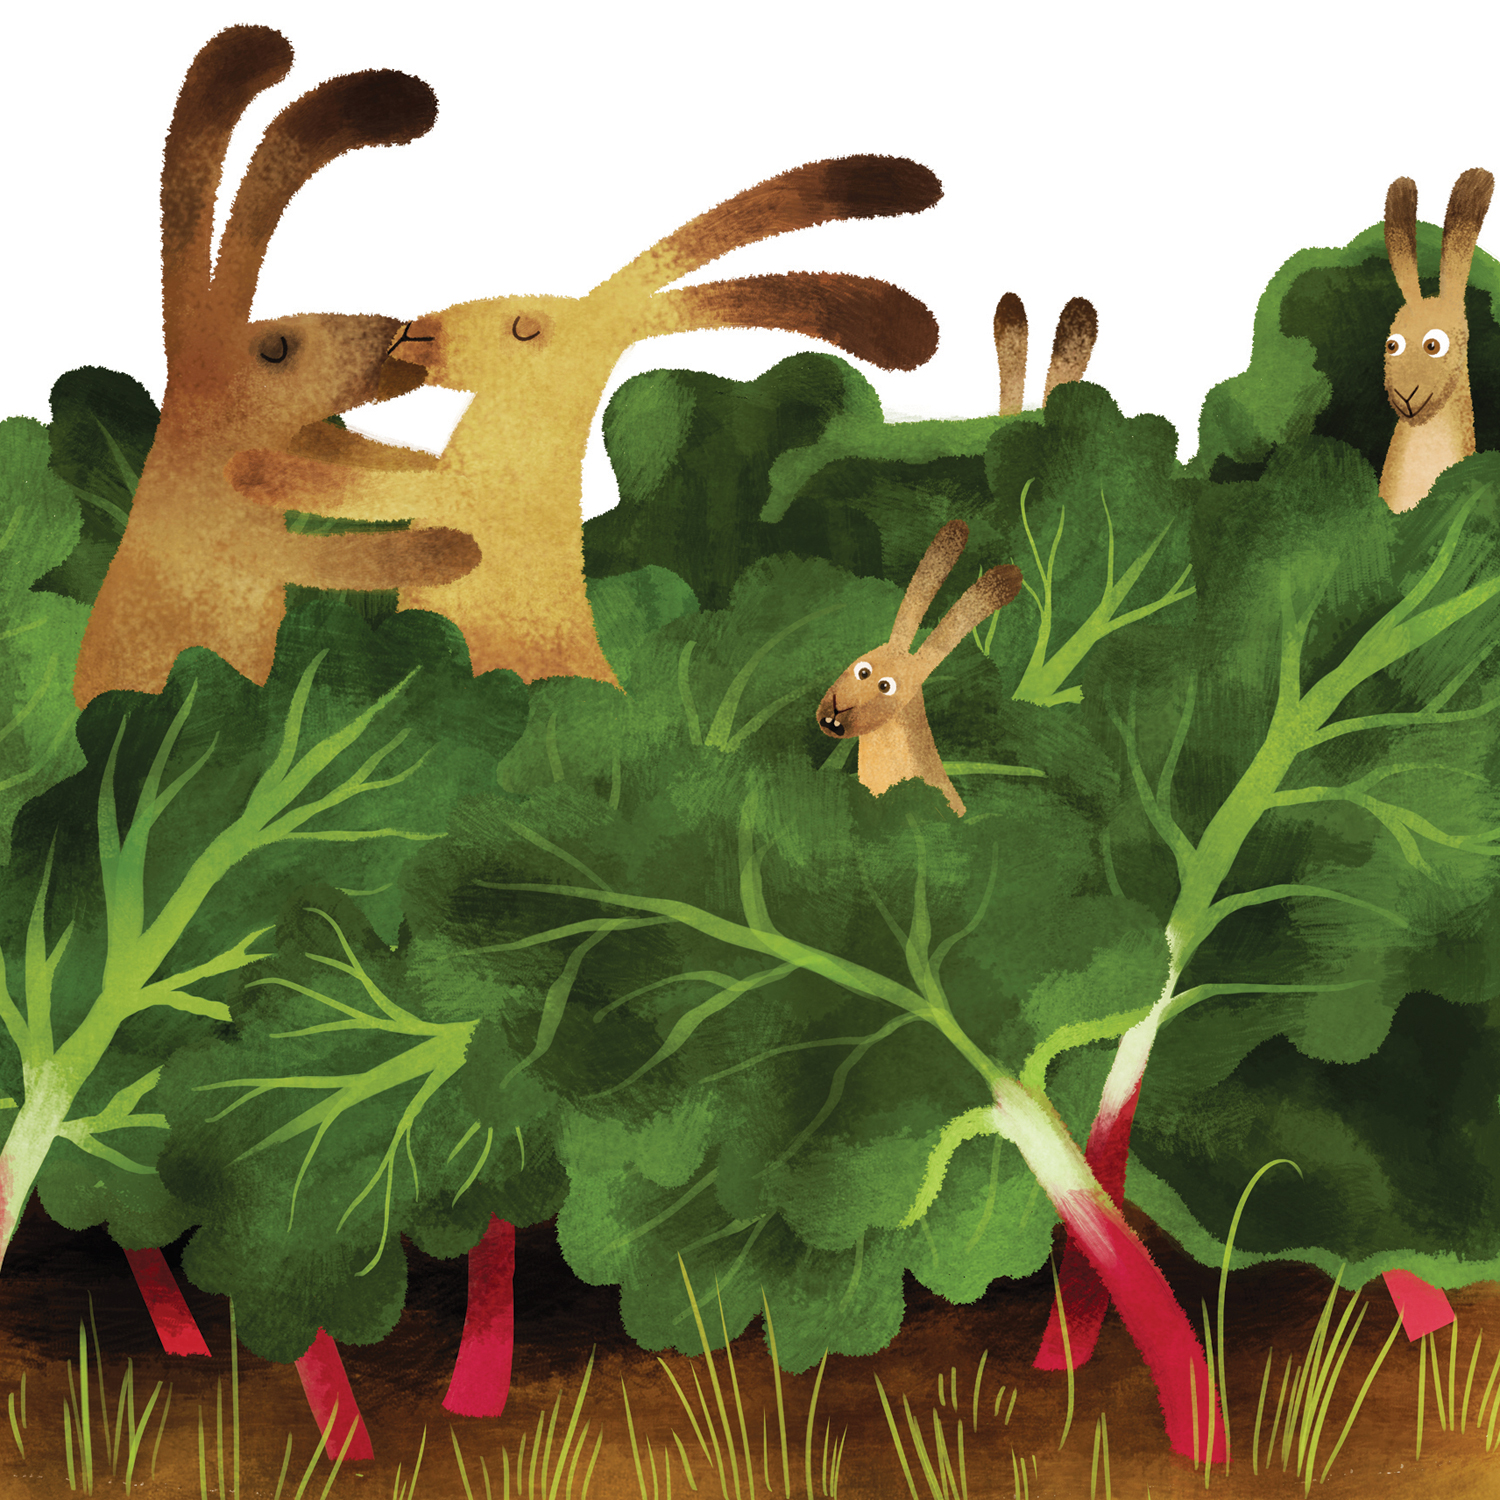 Kinnegar rabbits in the rhubarb patch. Walla Walla.